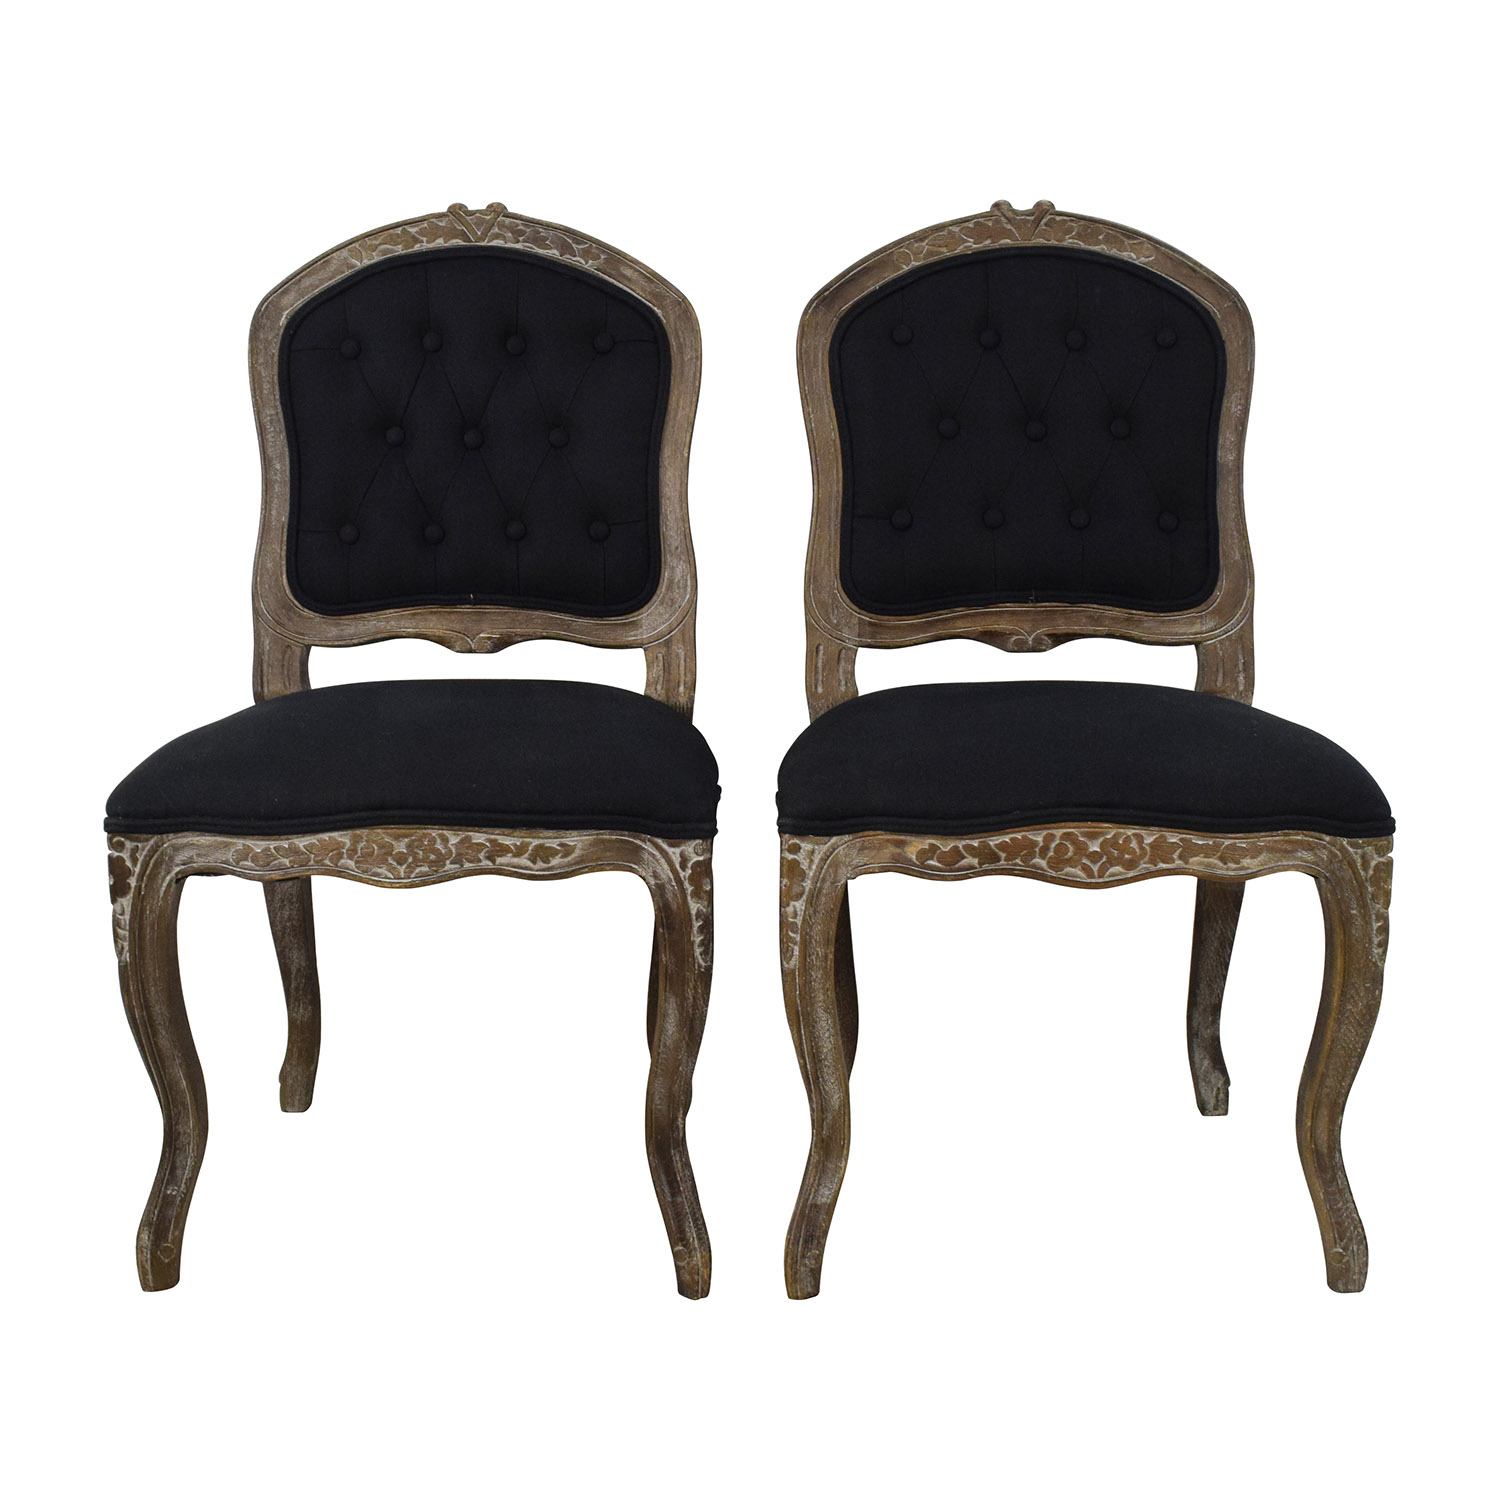 Shop Safavieh Safavieh Carissa Country French Brown Tufted Chairs Online ...